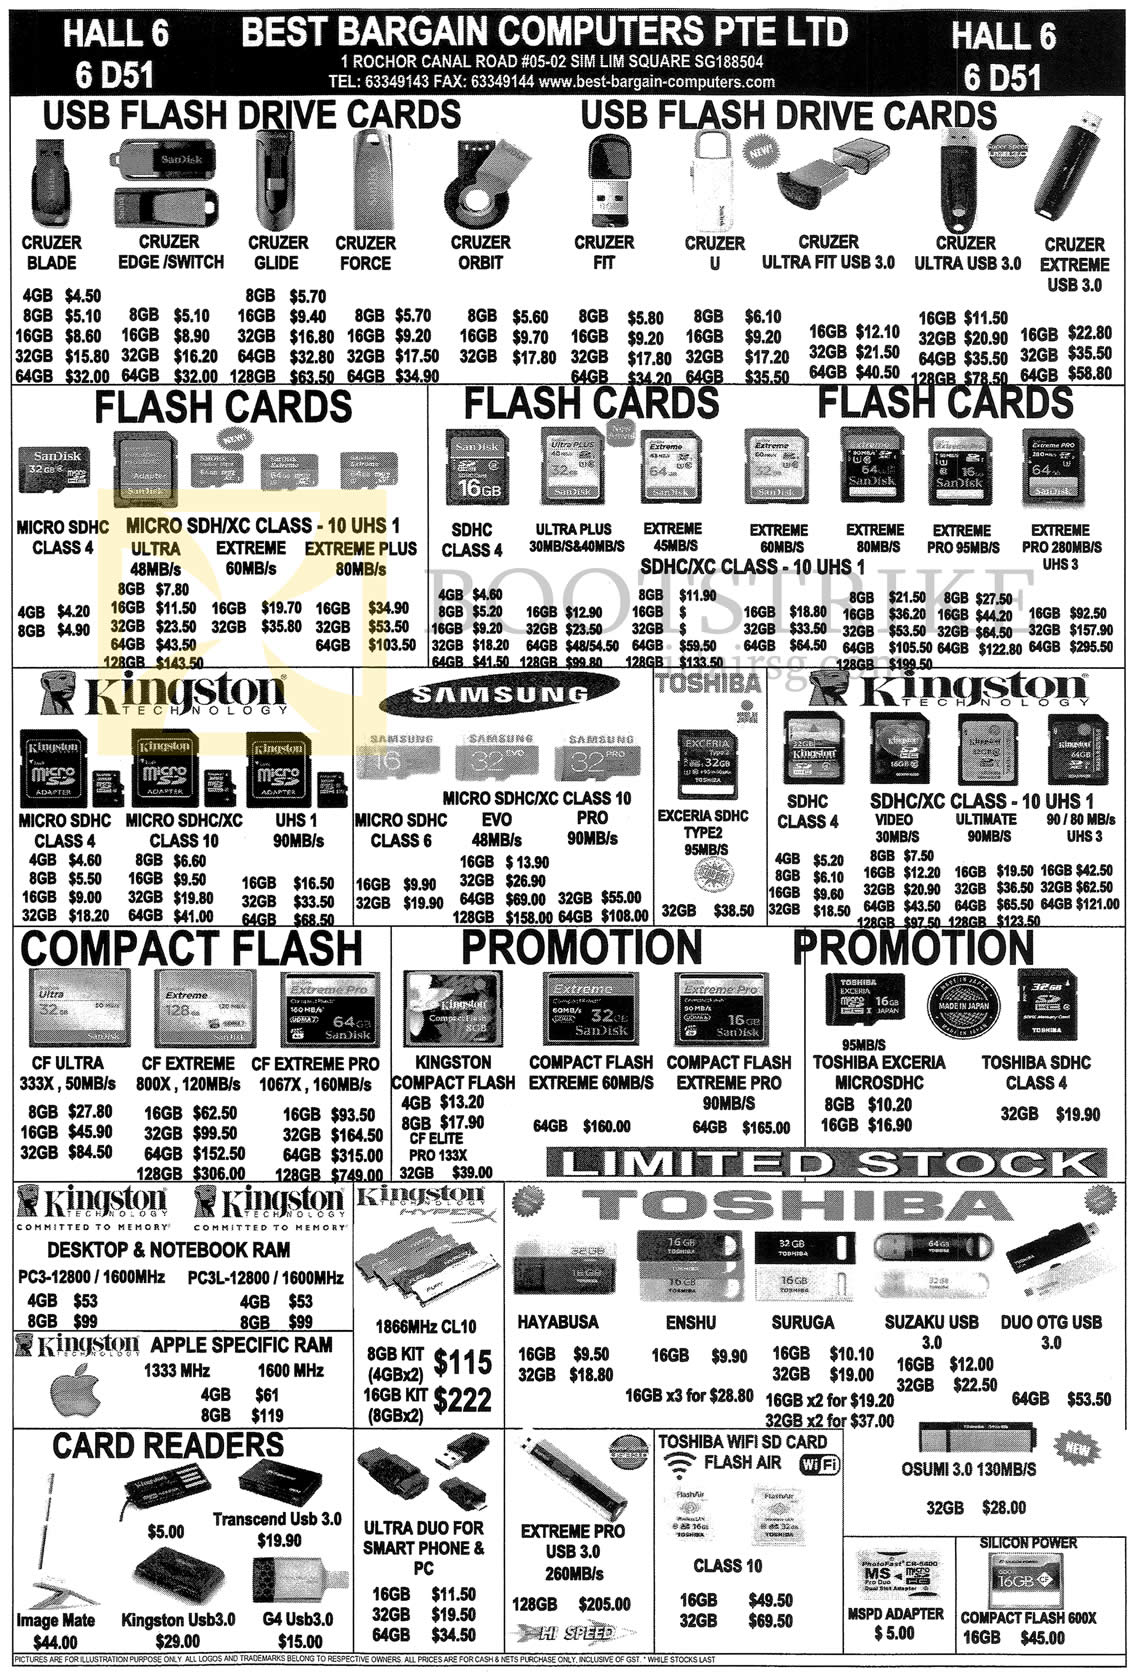 SITEX 2014 price list image brochure of Best Bargain Computers USB Flash Drive Cards, Flash Cards, Card Readers, Compact Flash, Samsung, Kingston, Toshiba, Micro SDHC, CF